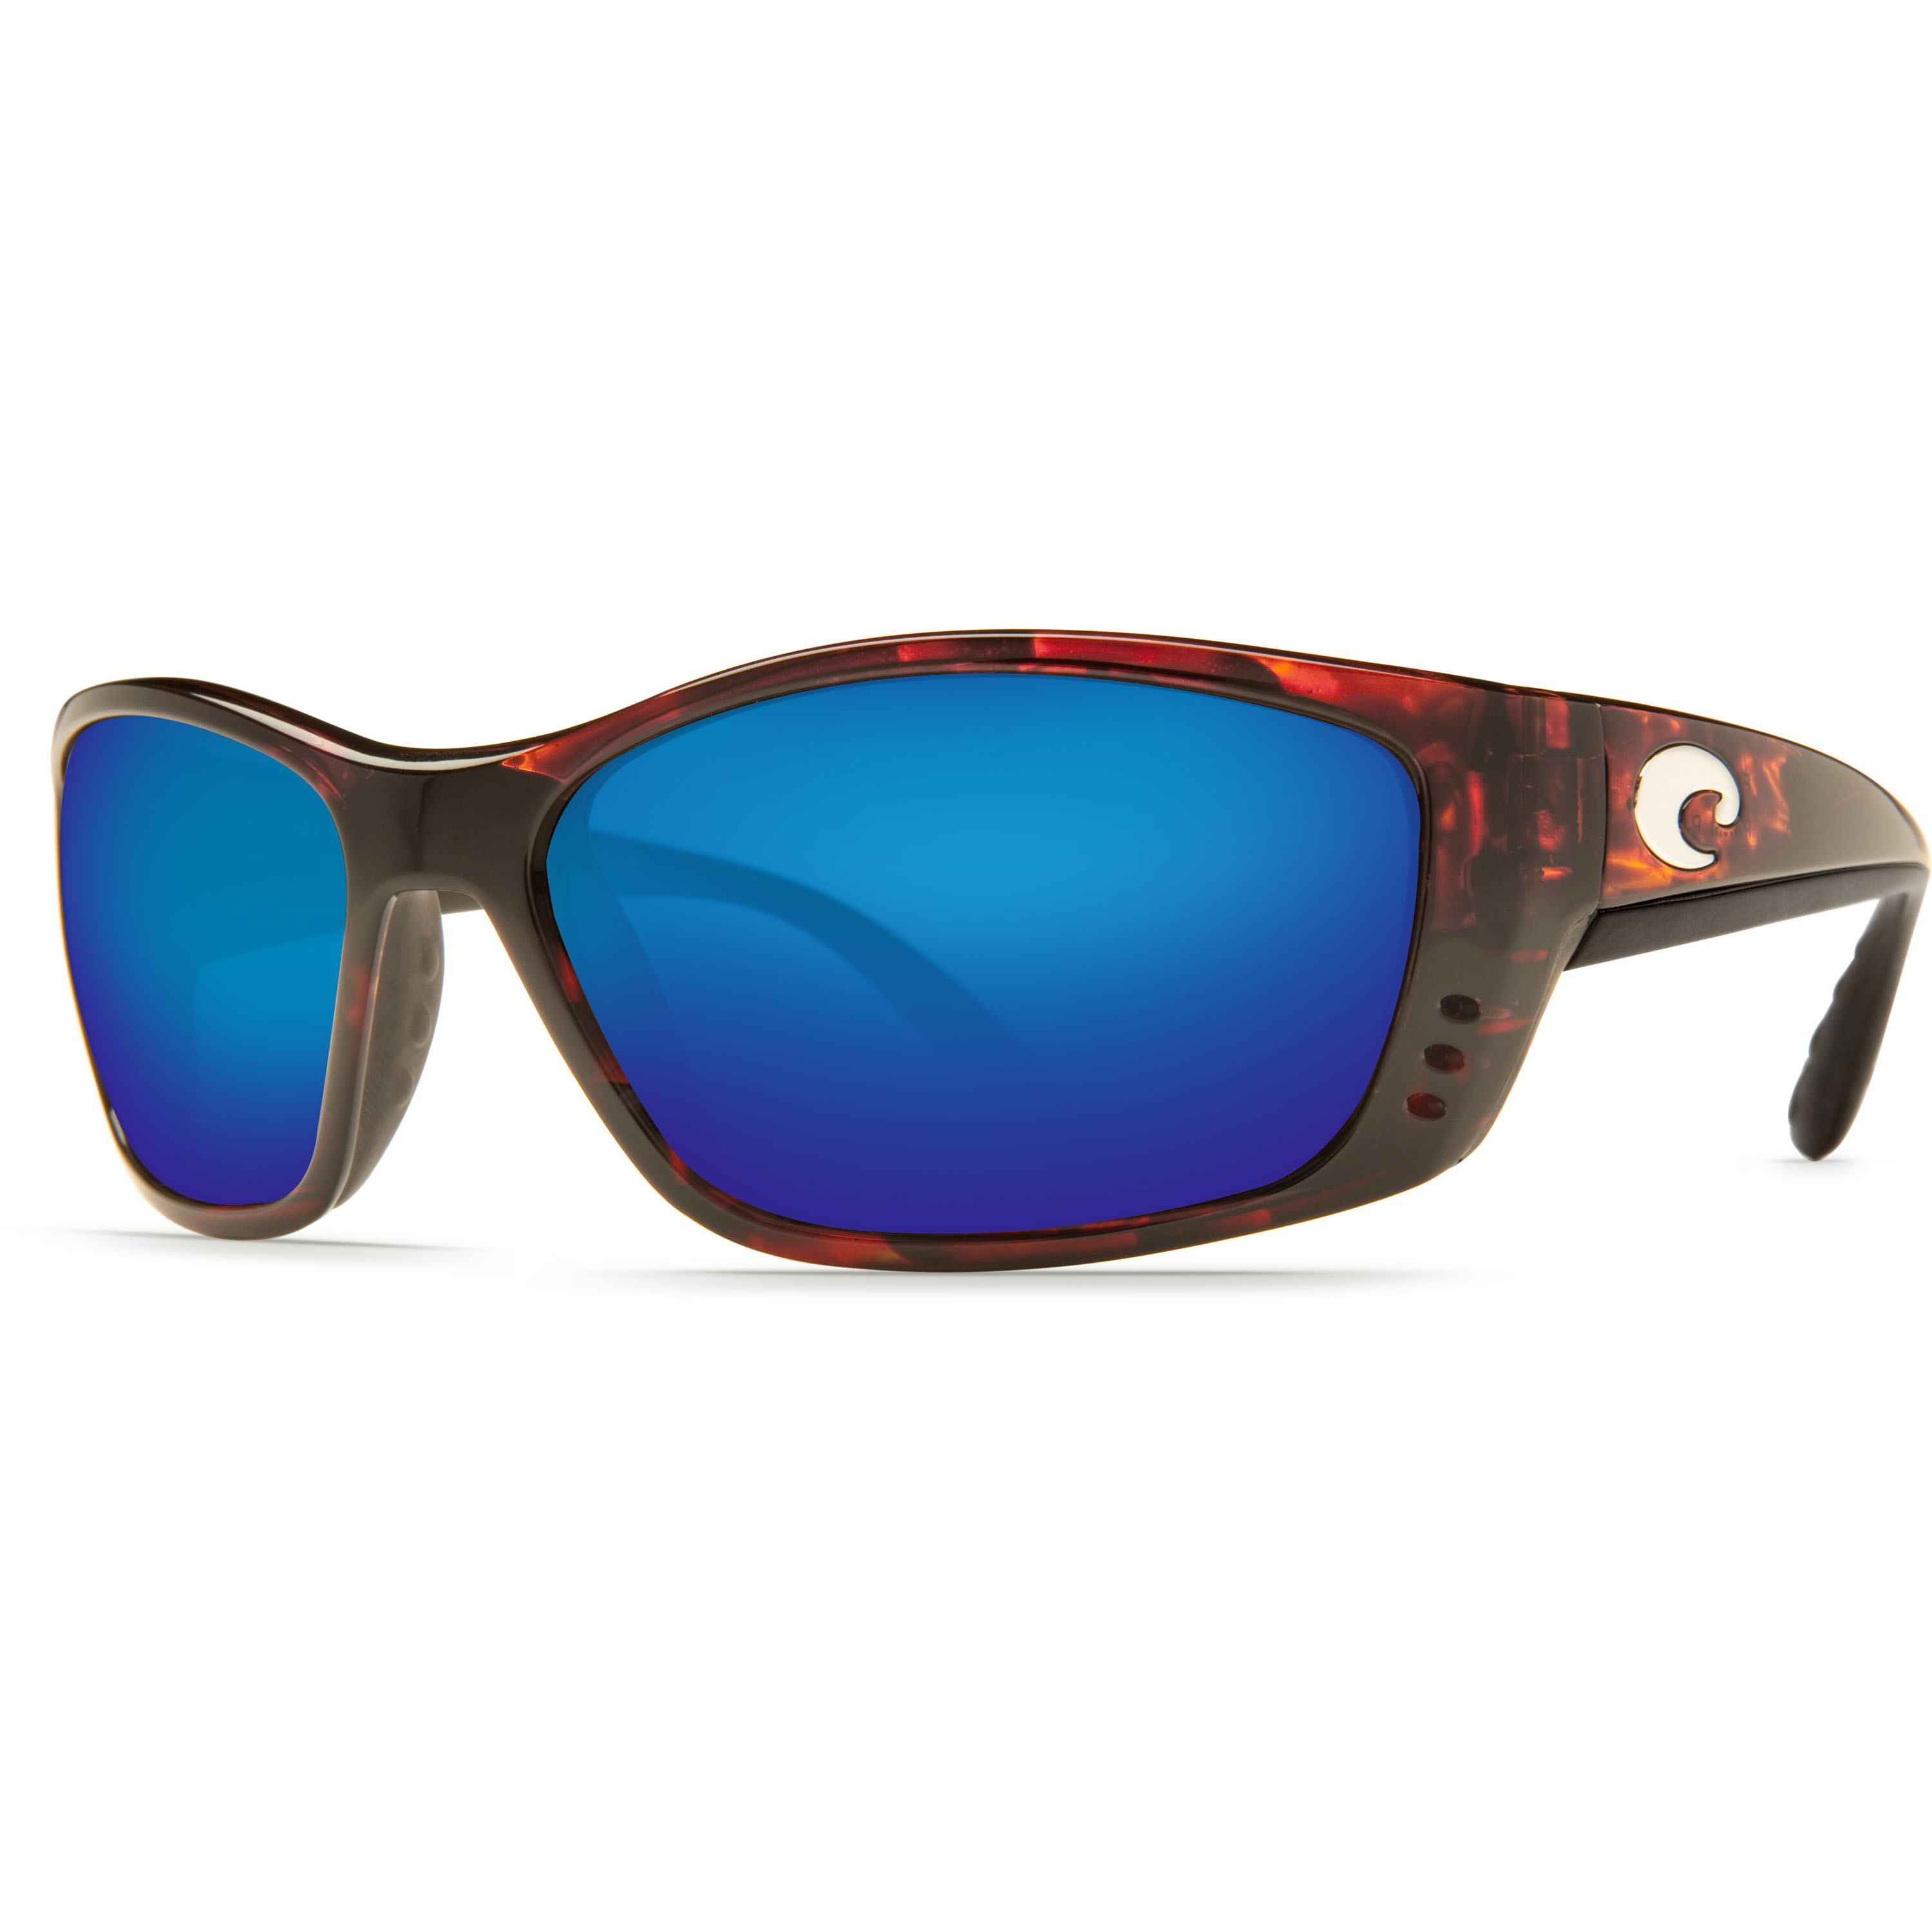 e4d0fdf46379d Costa Del Mar Fisch C-Mate Sunglasses. Ordered on request. £189.00 -  £209.00. CS2579 Tortoise Frame   Blue Mirror ...